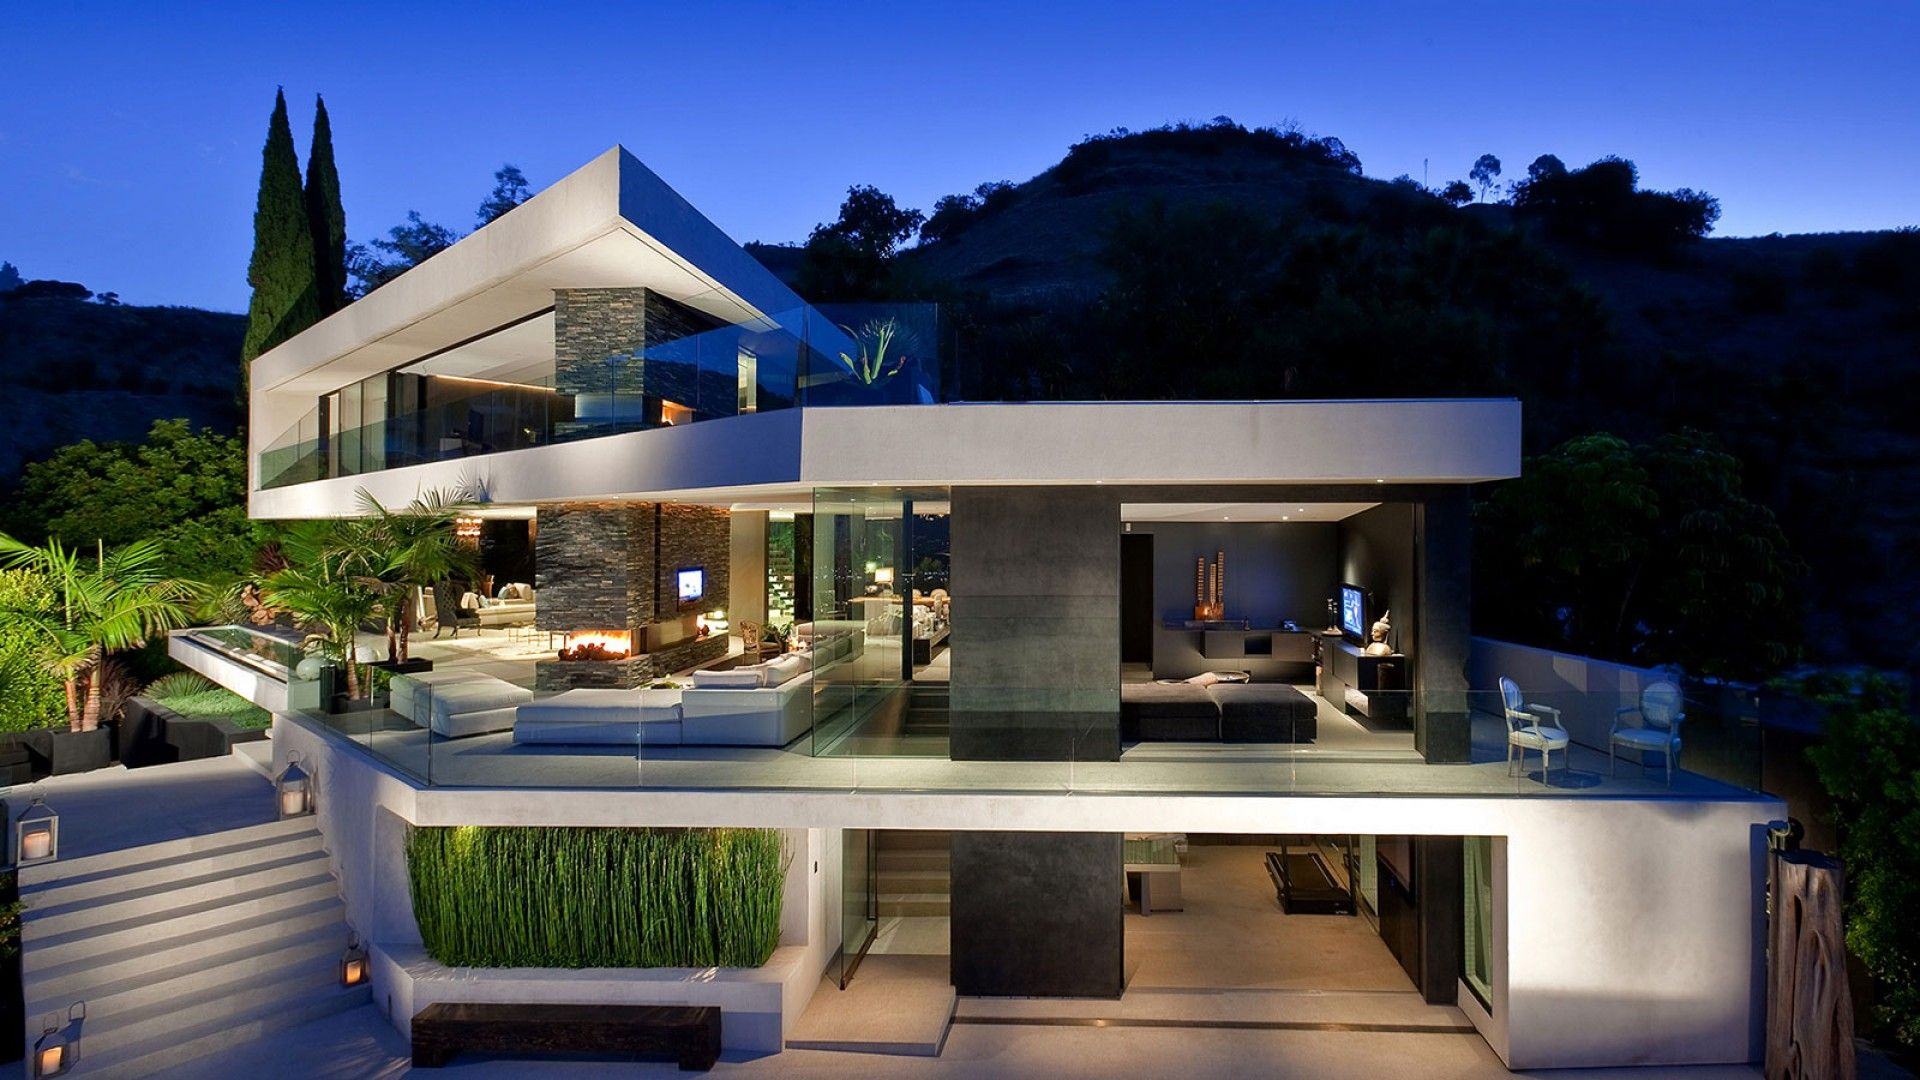 Hollywood hills mansions spectacular hollywood hills for Contemporary mansions